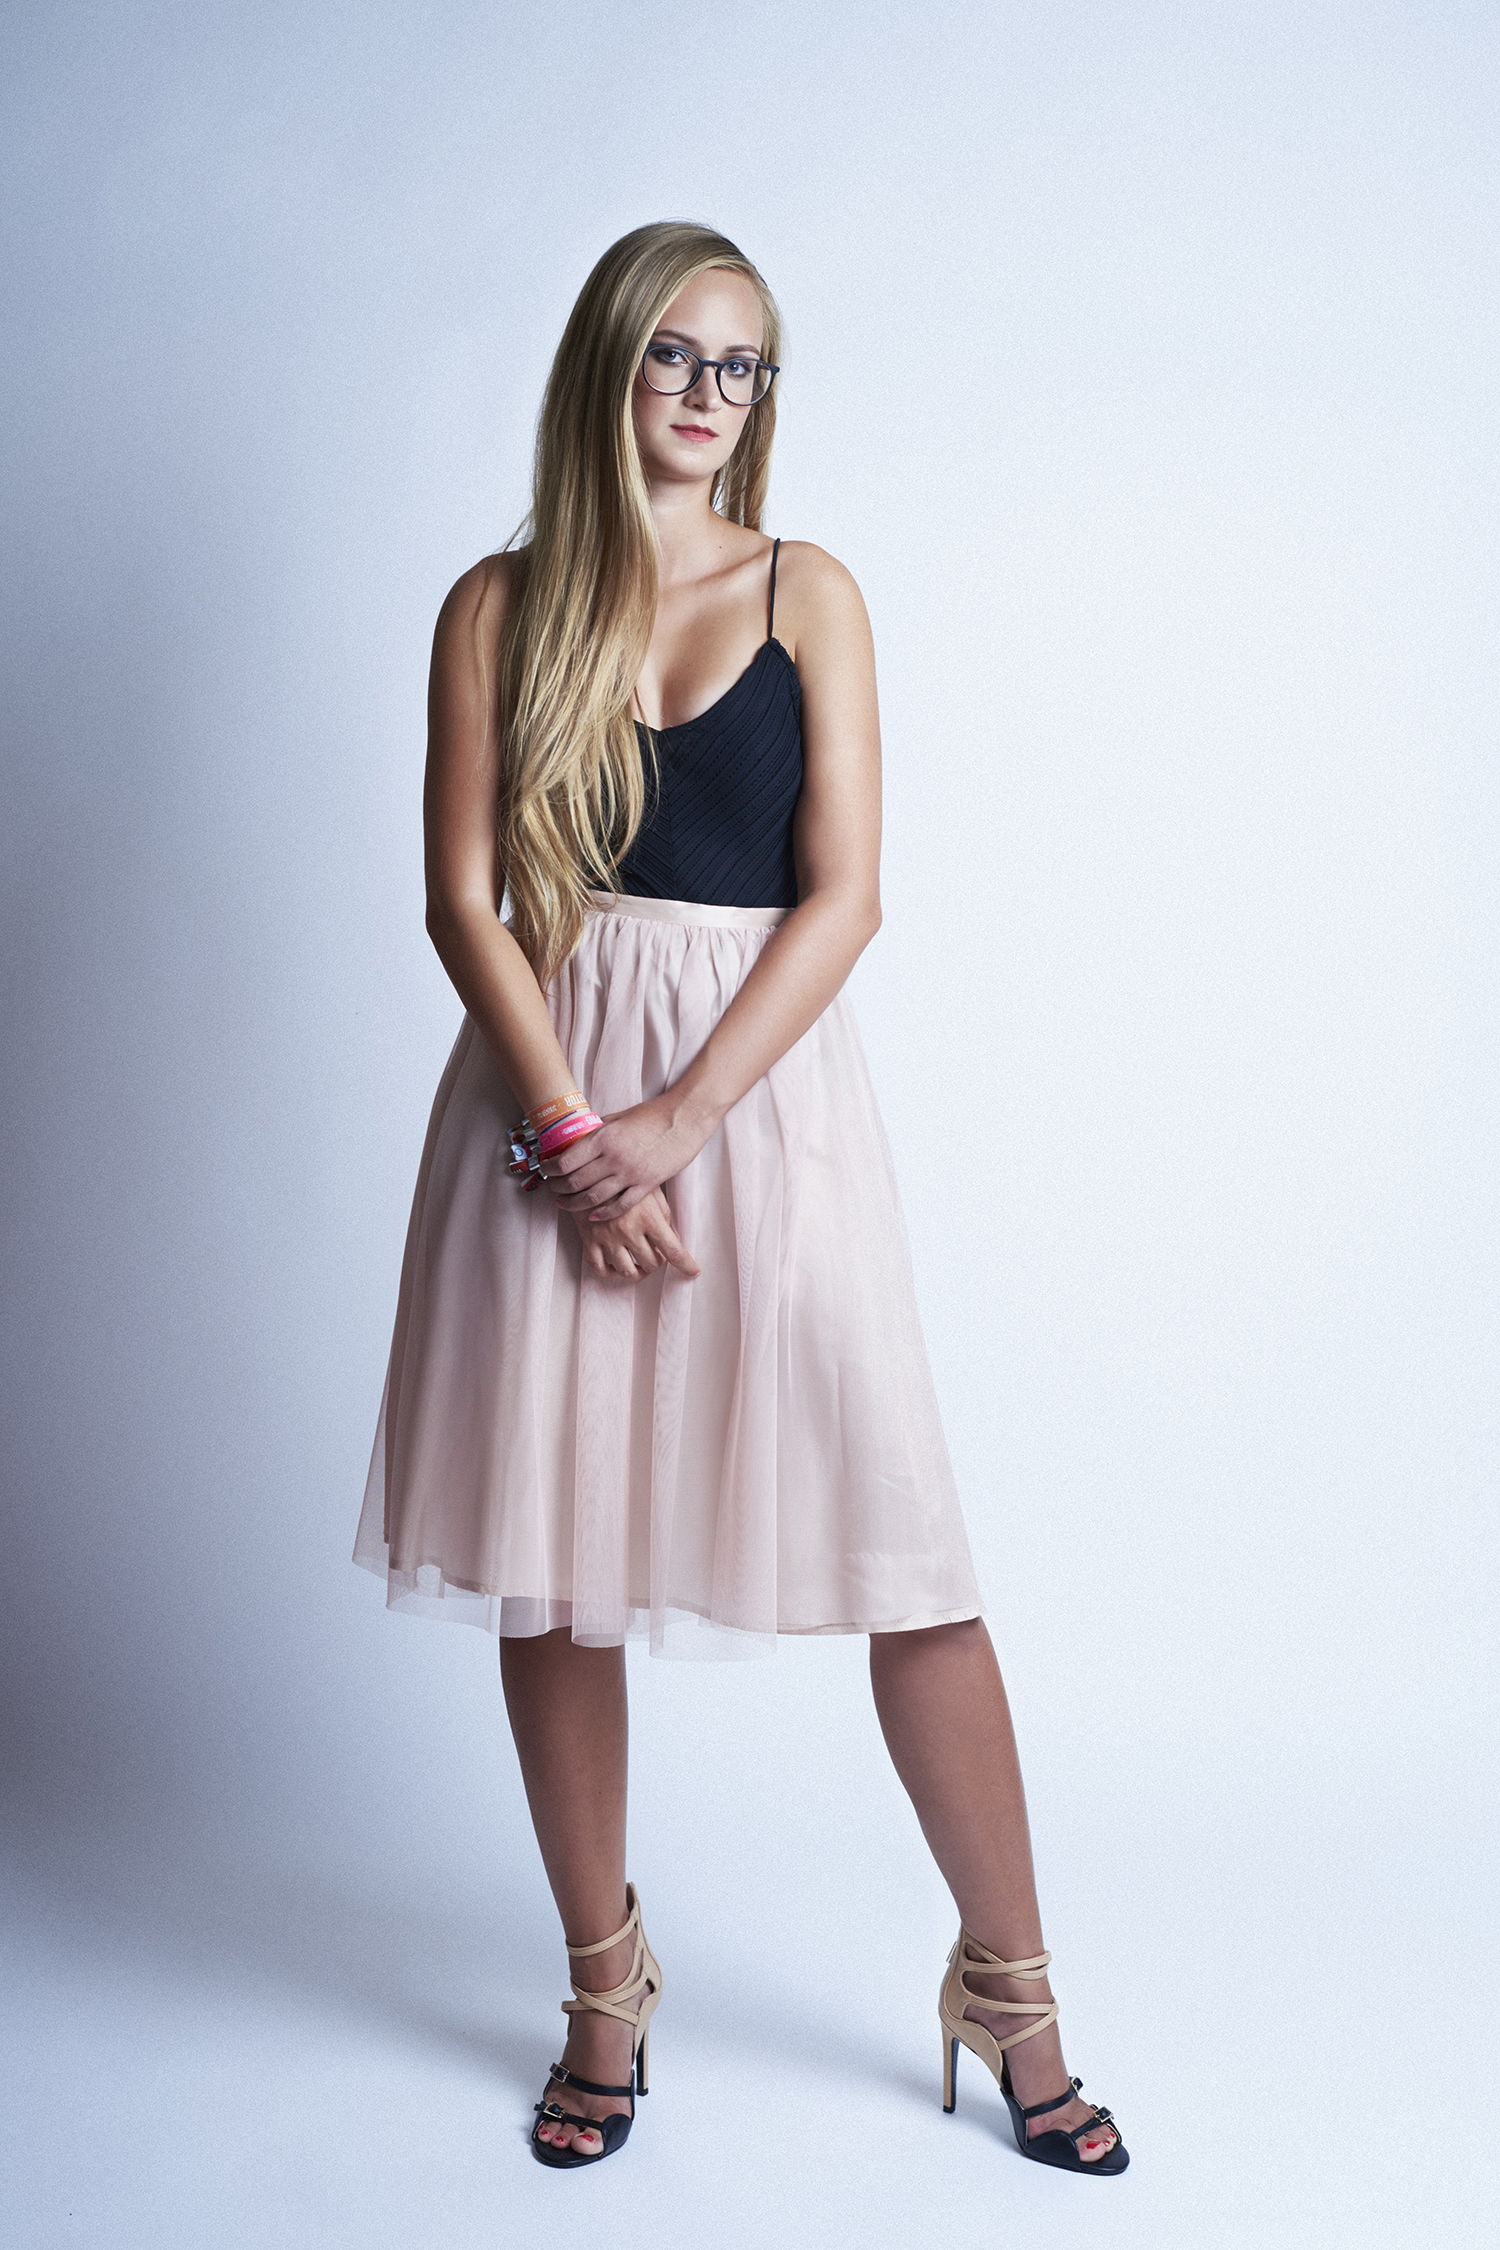 Need a tulle skirt...